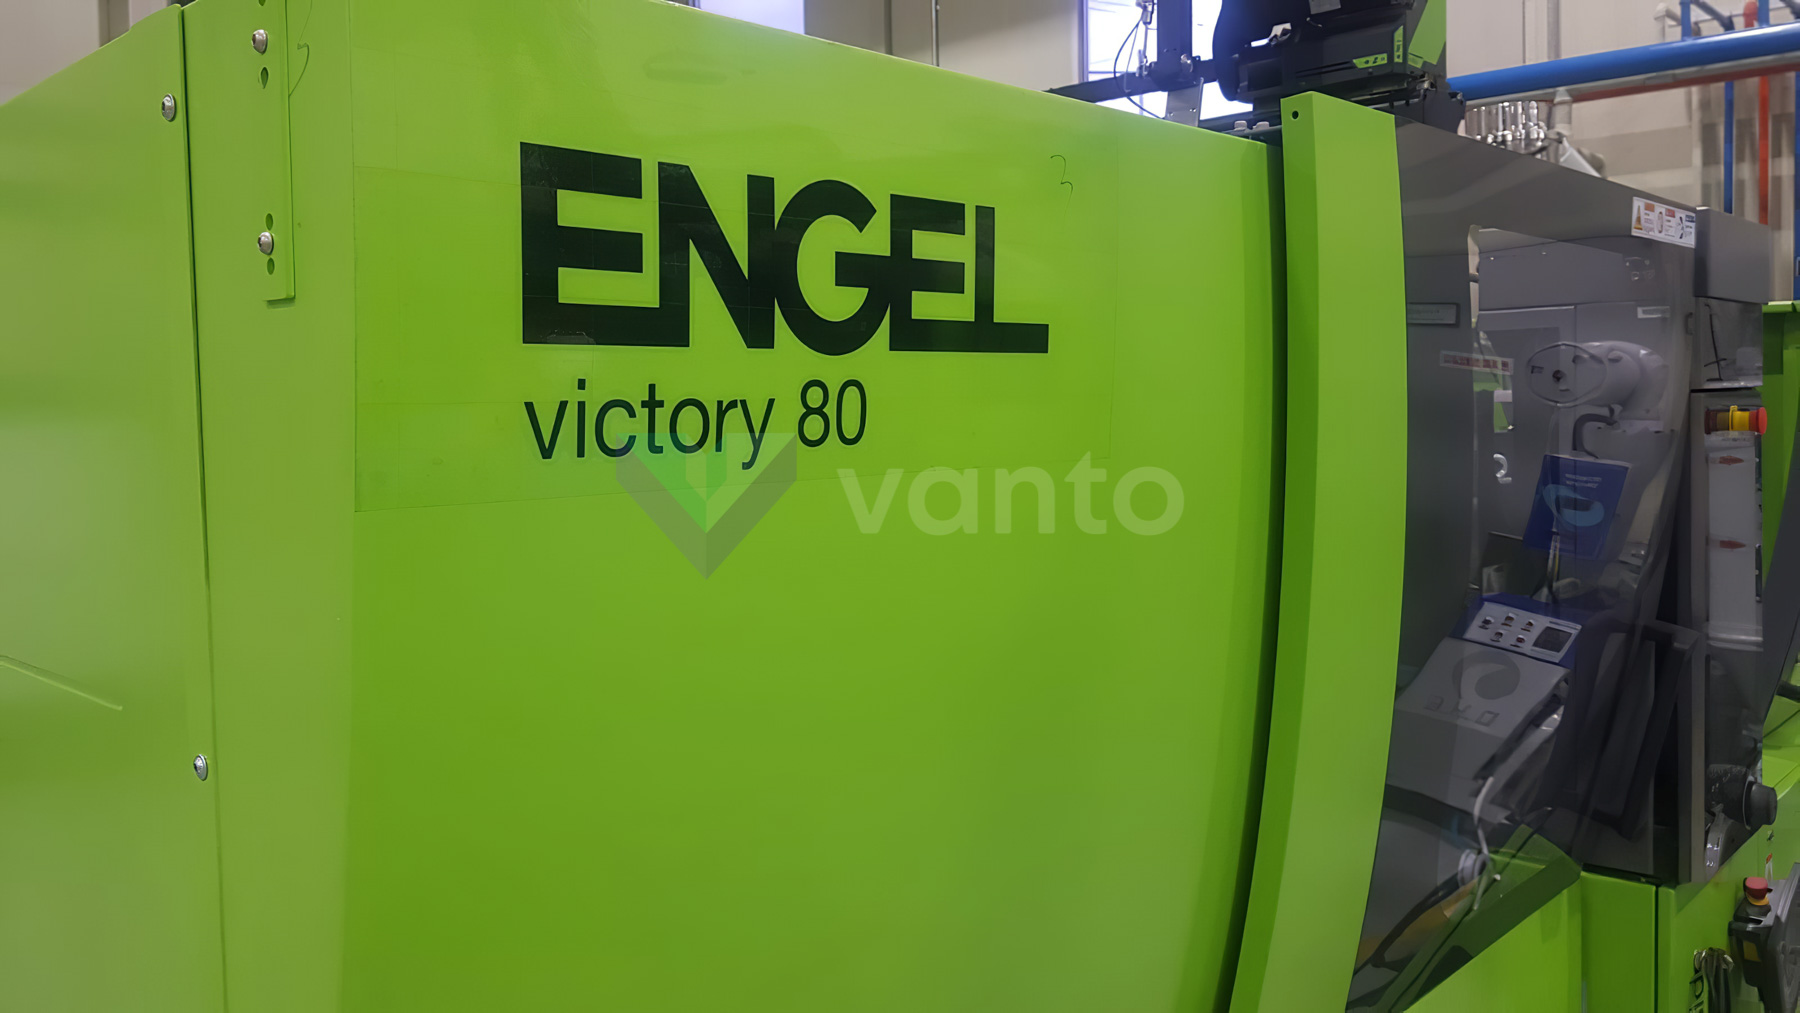 ENGEL VICTORY VC 200 / 80 TECH PRO 80t injection molding machine (2017) id10409